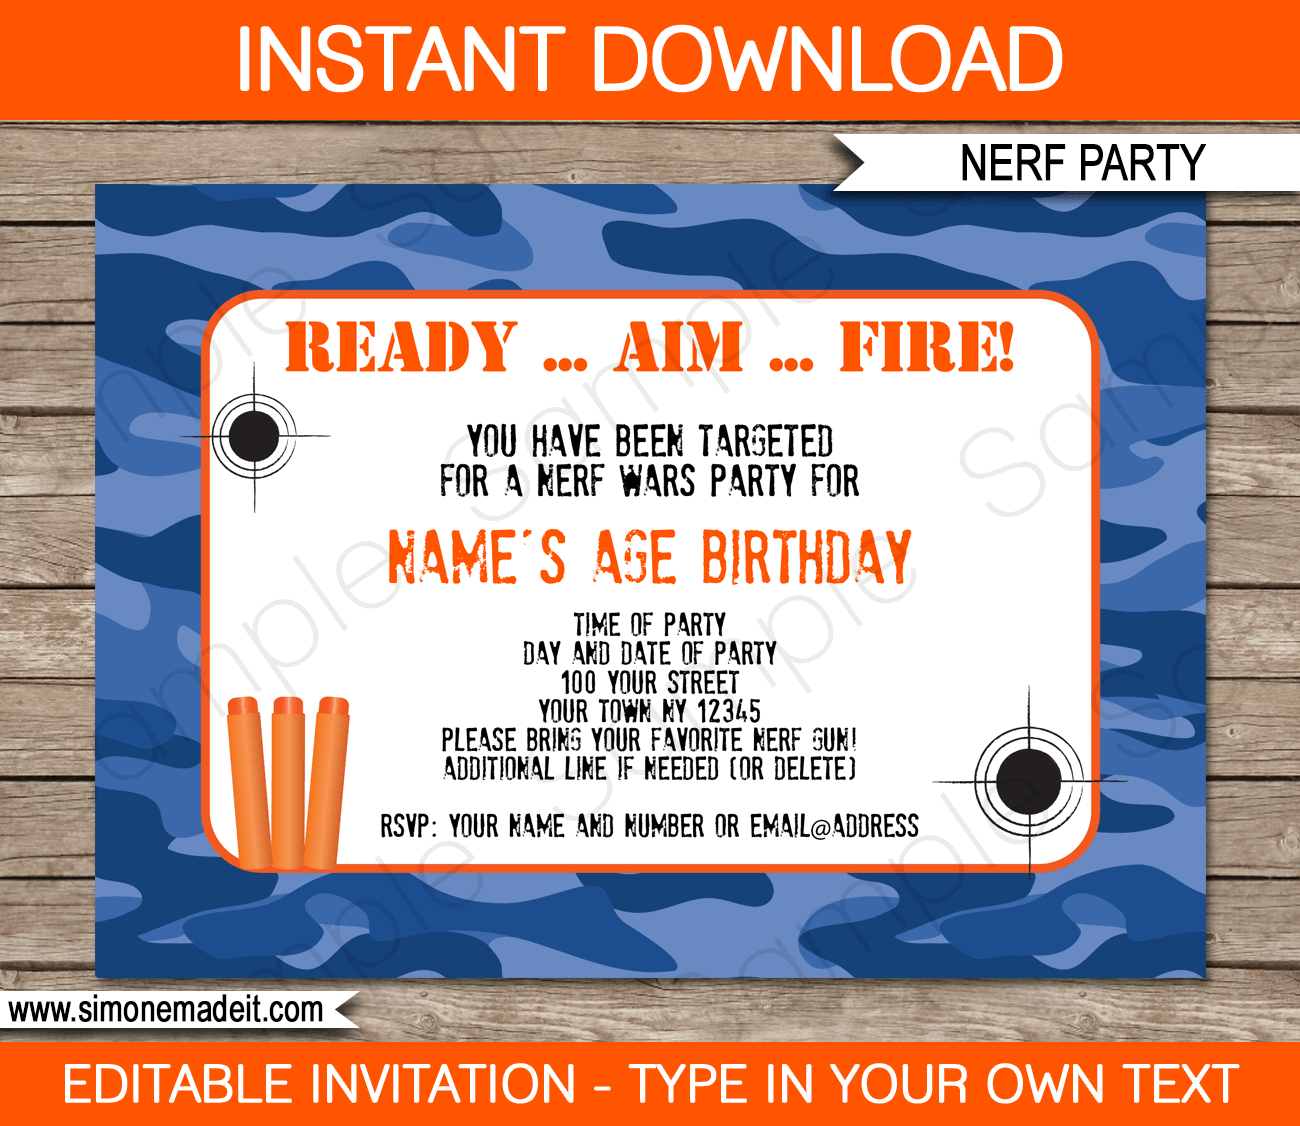 Nerf Party Invitations Template – Blue Camo | Boys Birthdays | Nerf - Free Nerf Printables